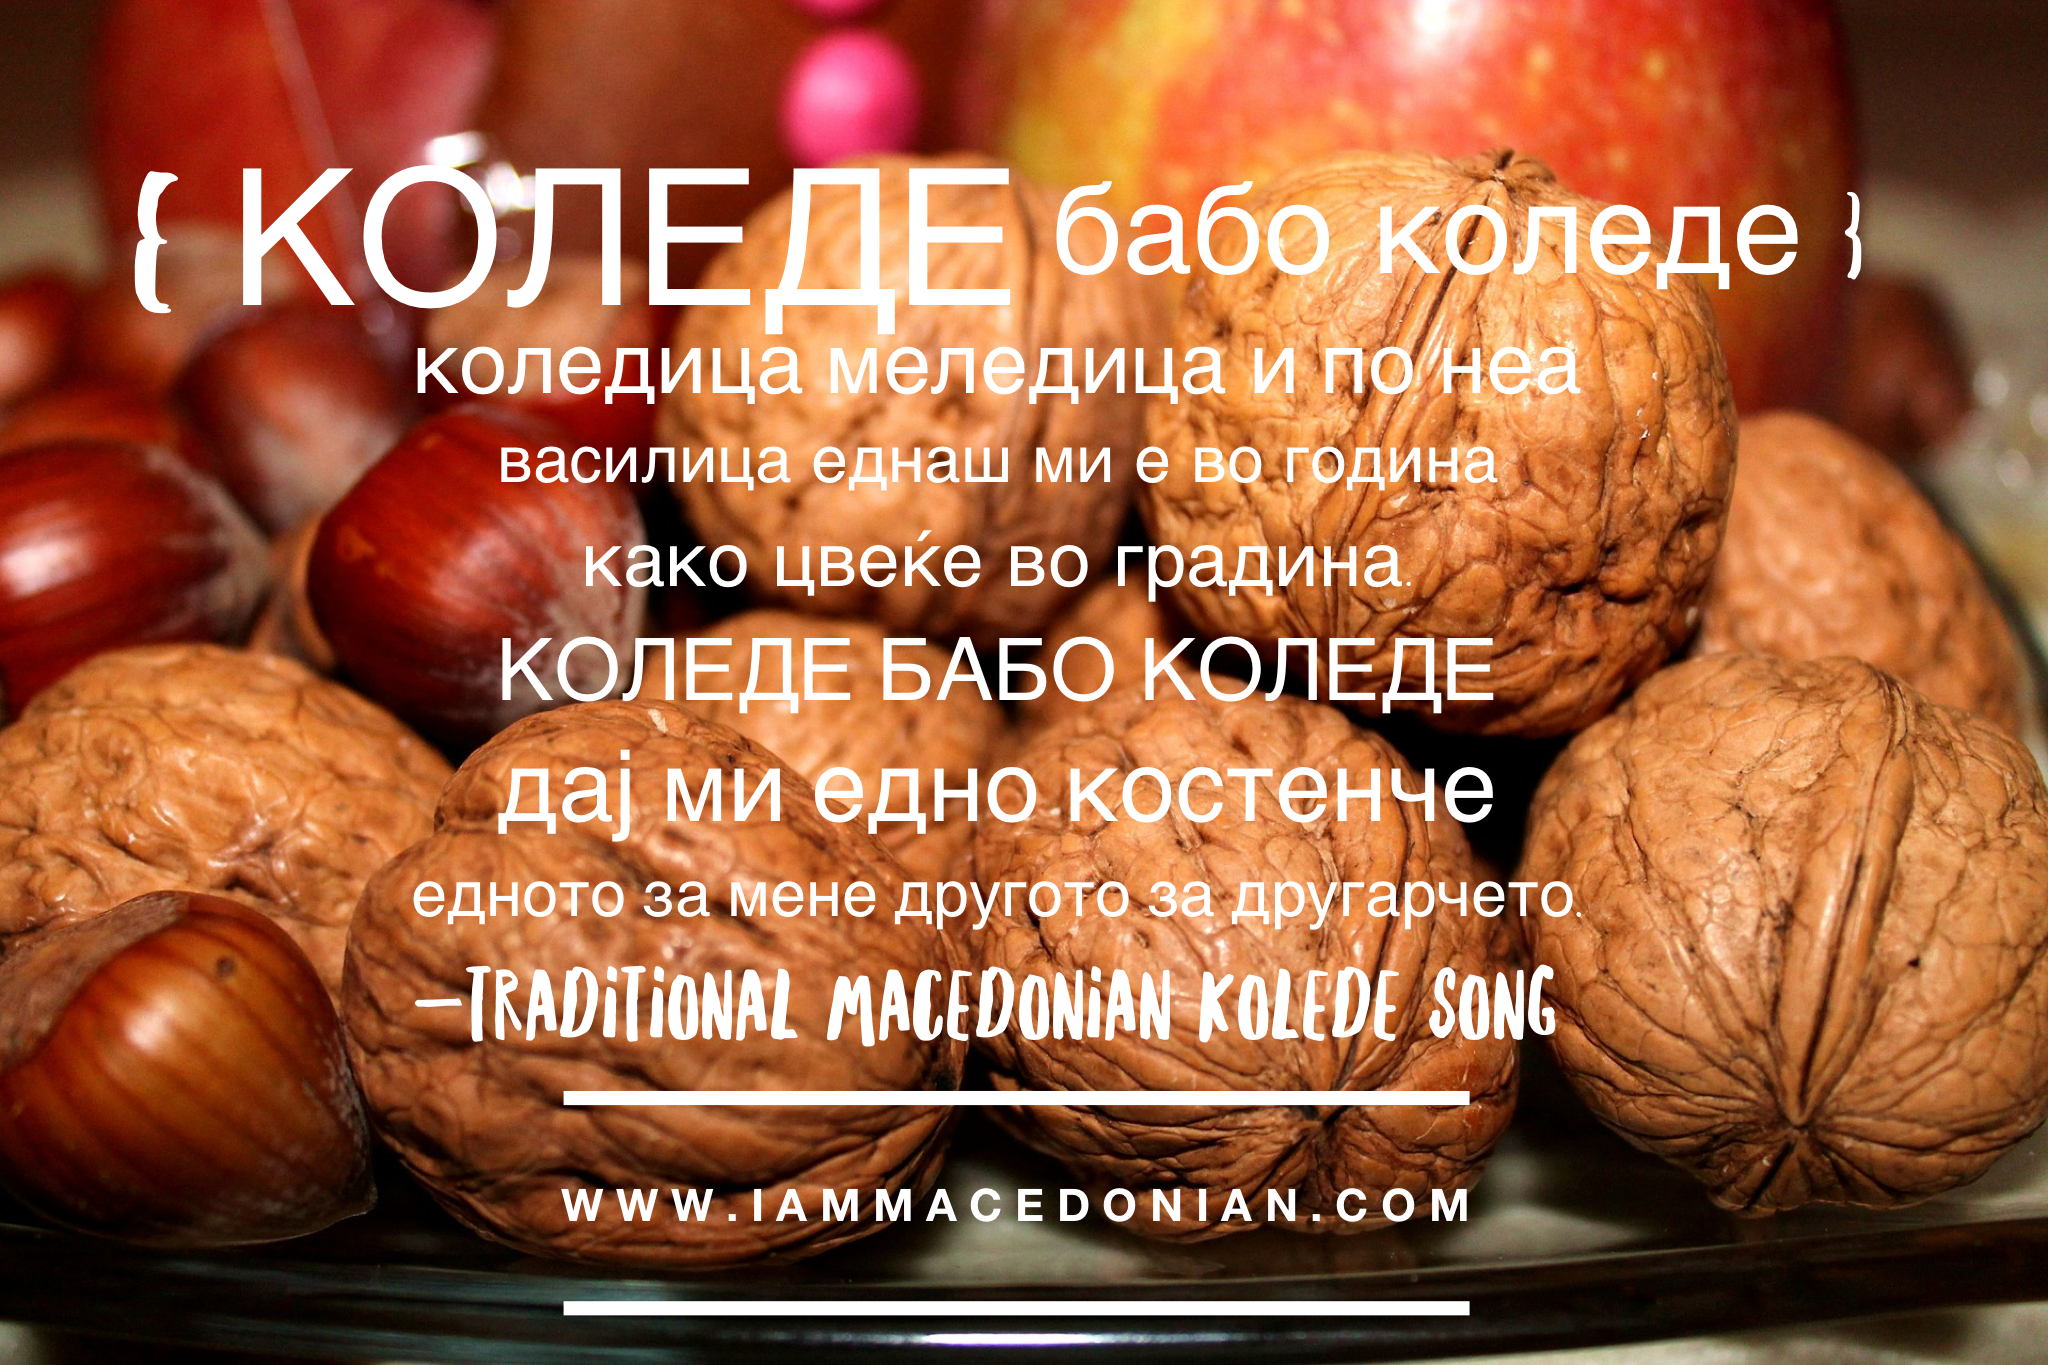 Macedonian Christmas Traditions – It's time for Kolede!